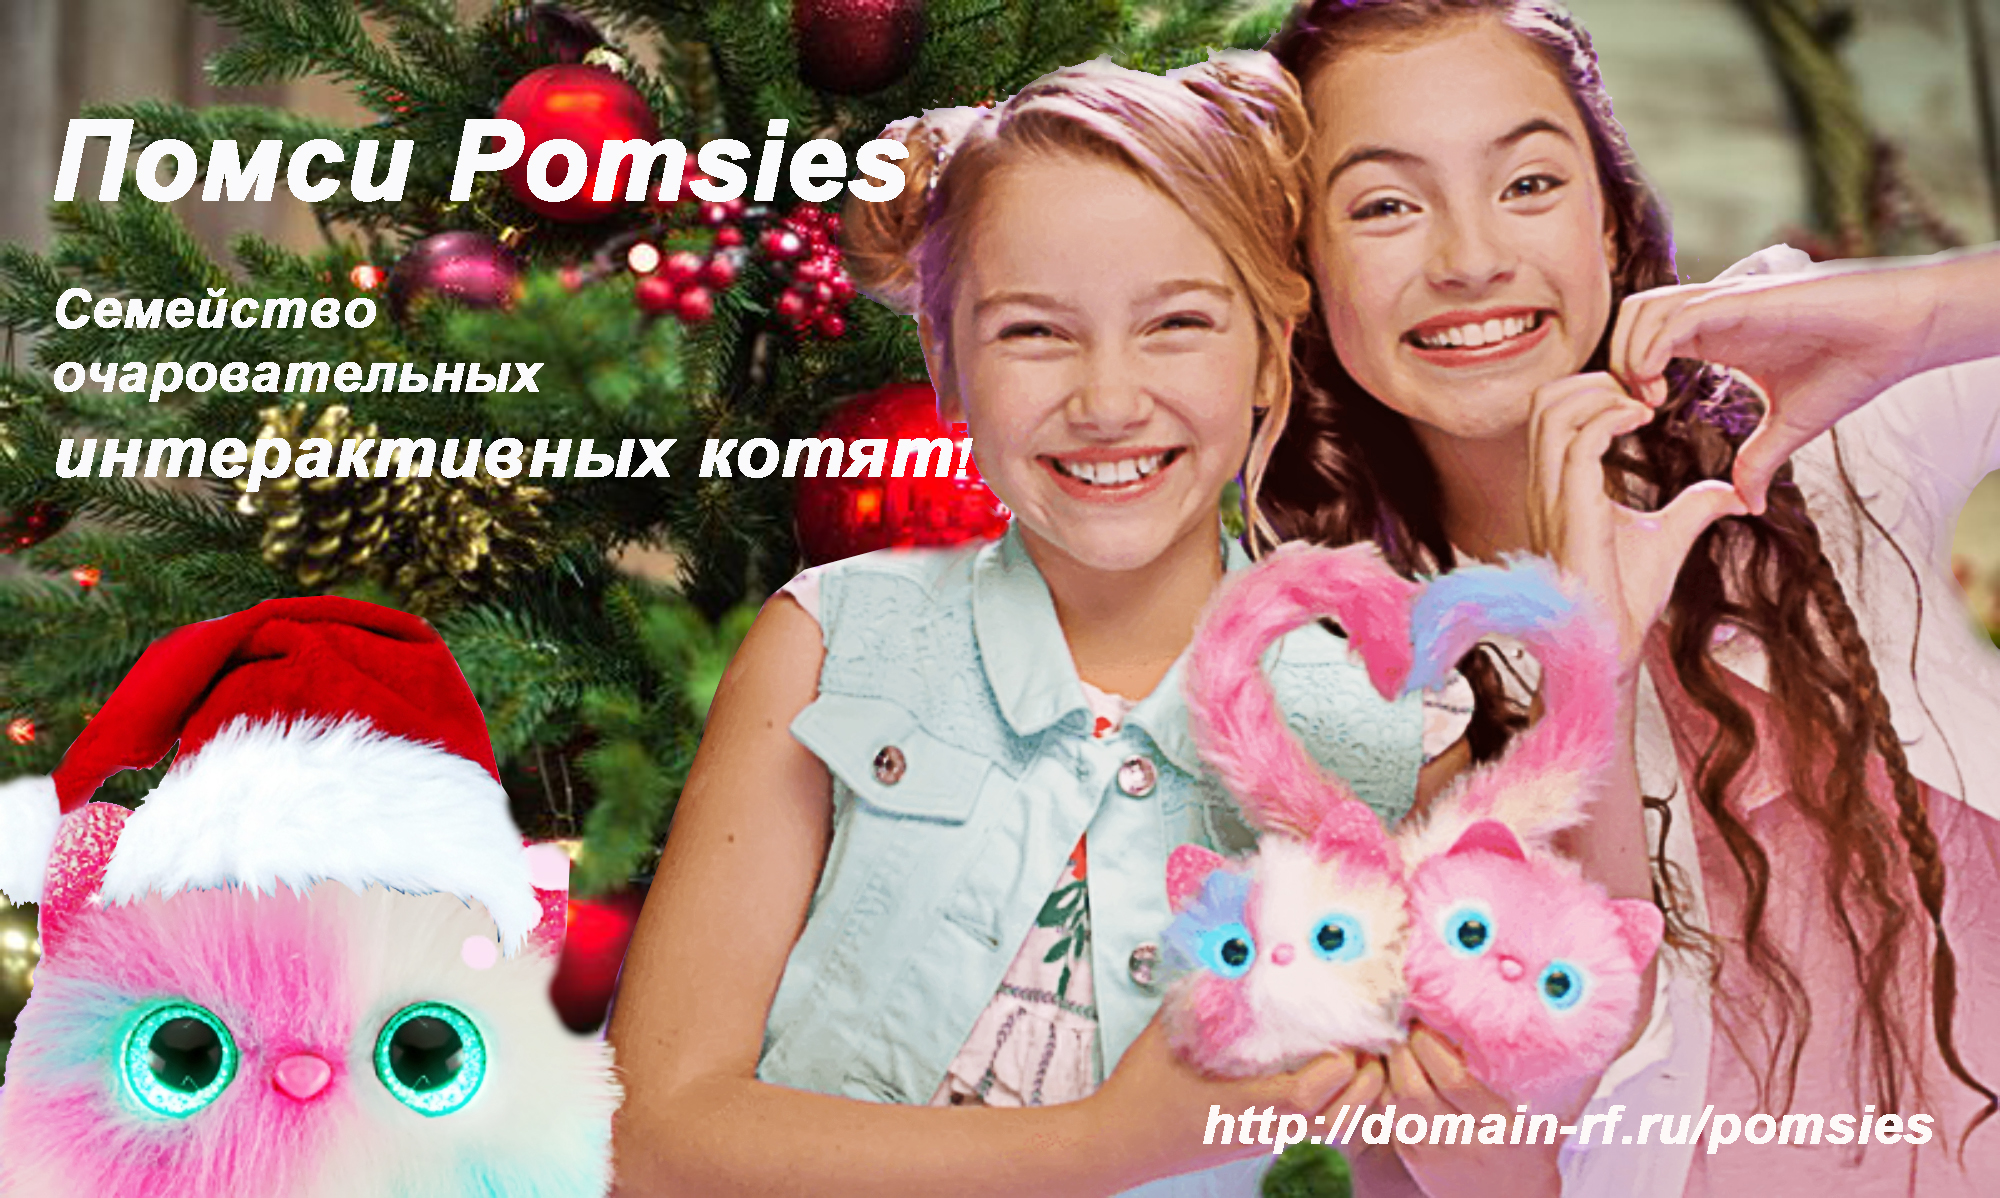 https://i.ibb.co/0cM03Sc/cropped-Pomsies-Header.jpg